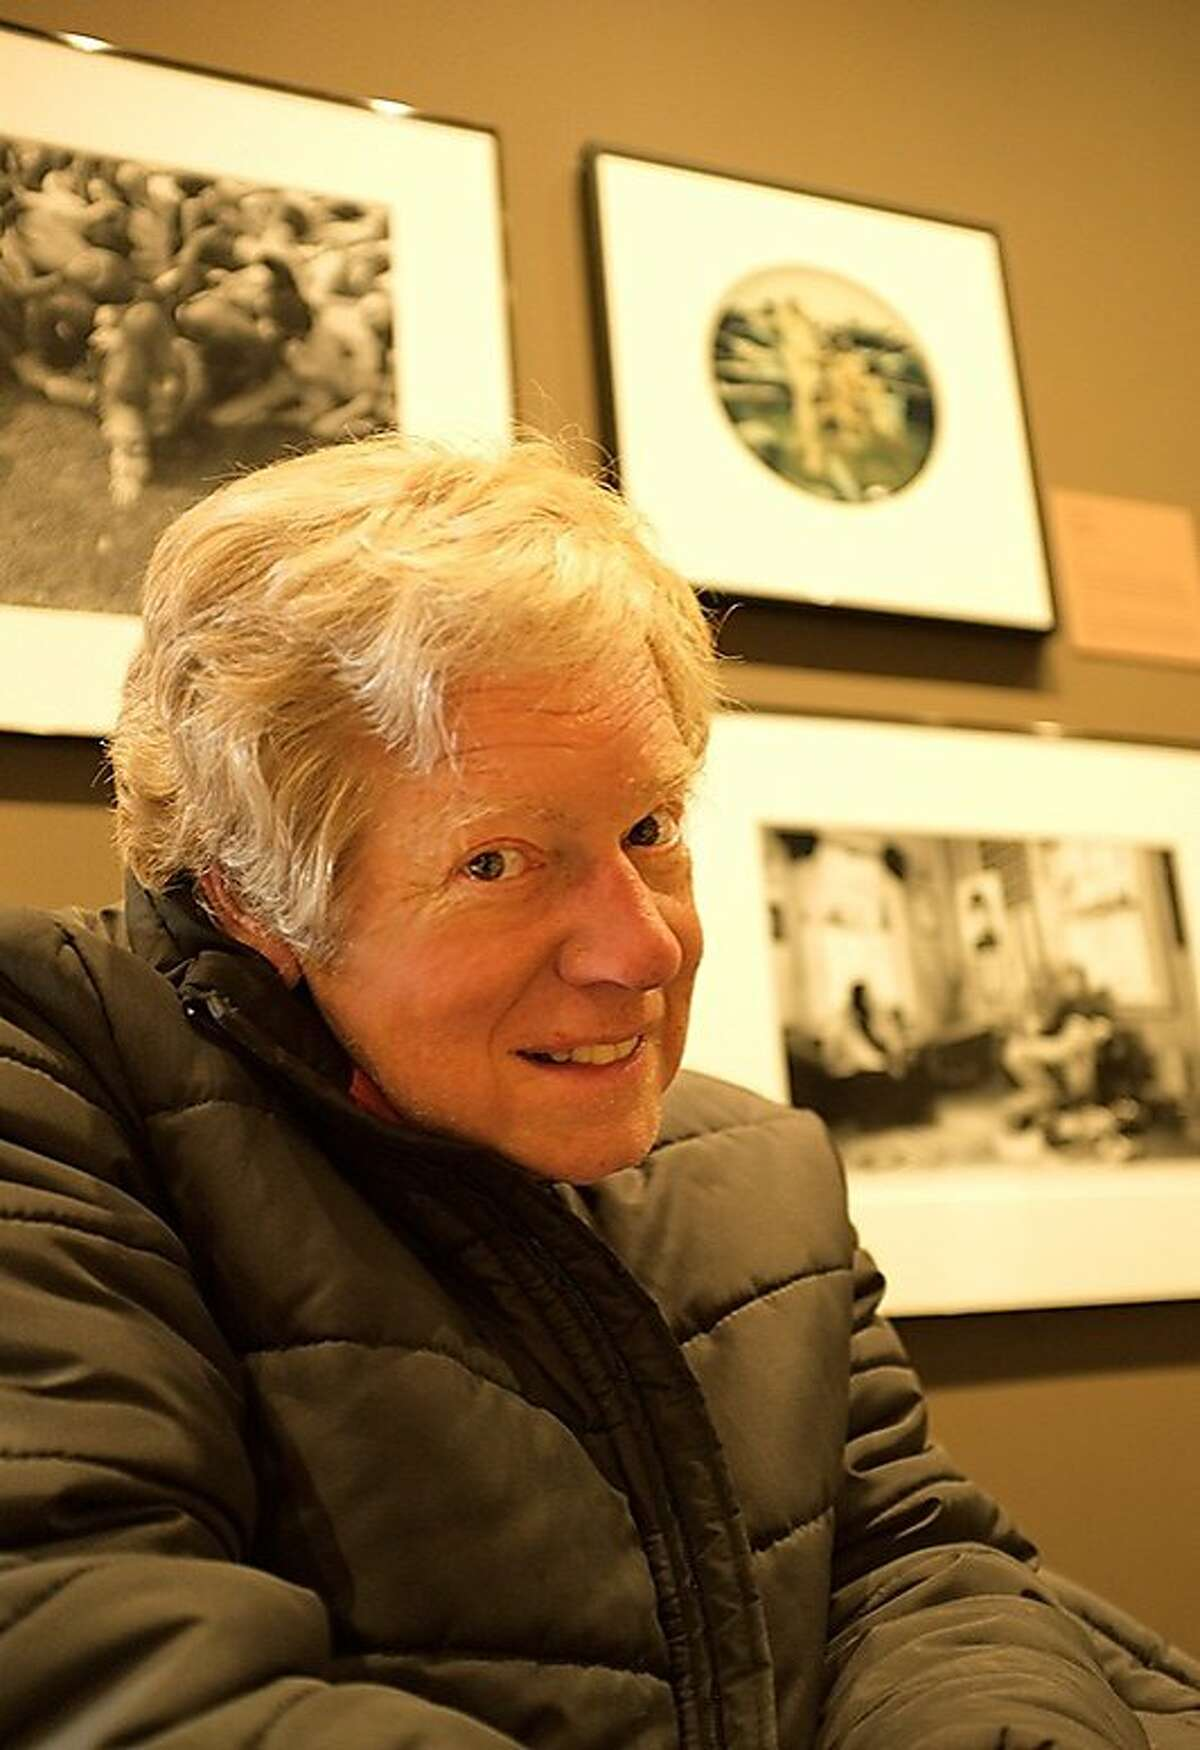 Photographer Larry Keenan in front of his work during a 2011 exhibition at the Oakland Museum of California.